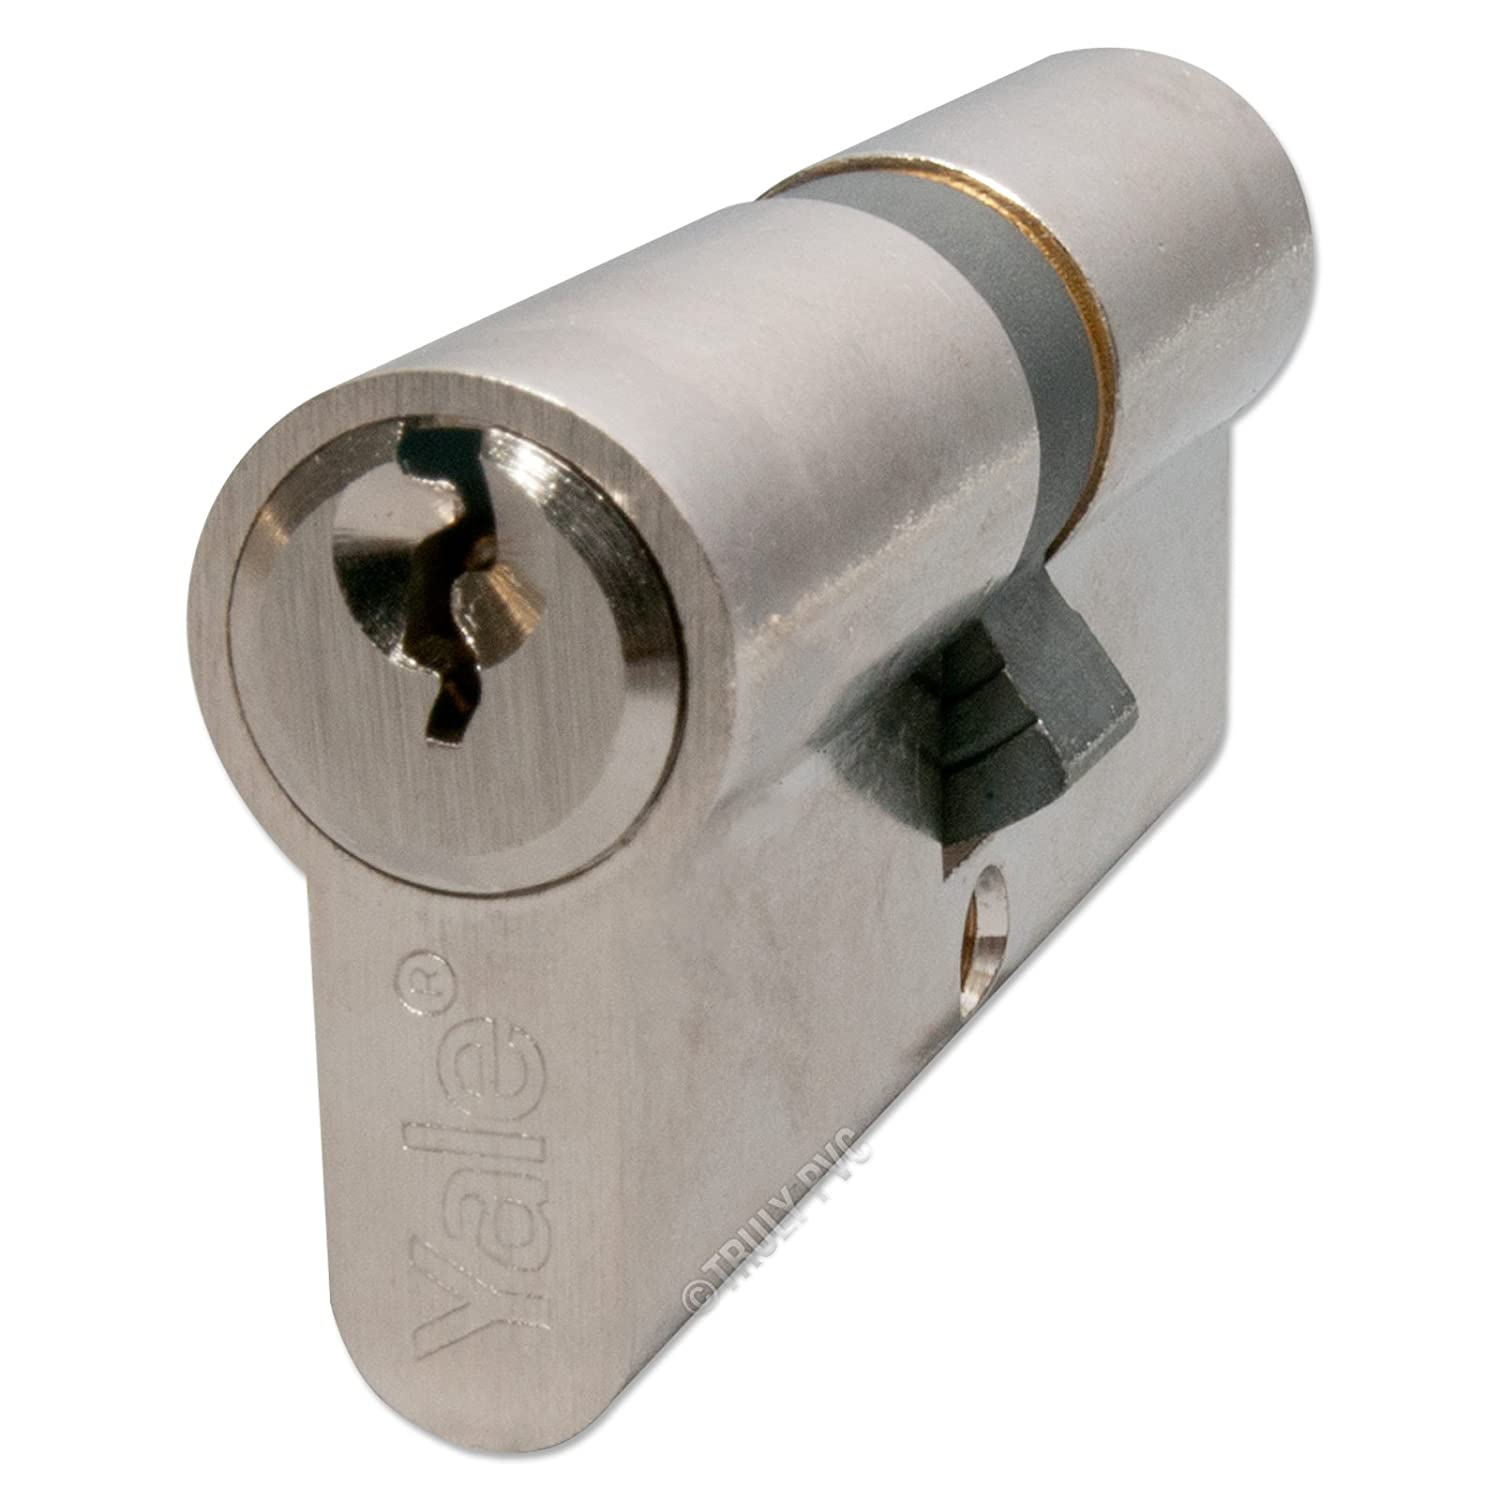 Le Meilleur Door Barrel 40 55 Nickel Plated Yale Euro Cylinder With Ce Mois Ci